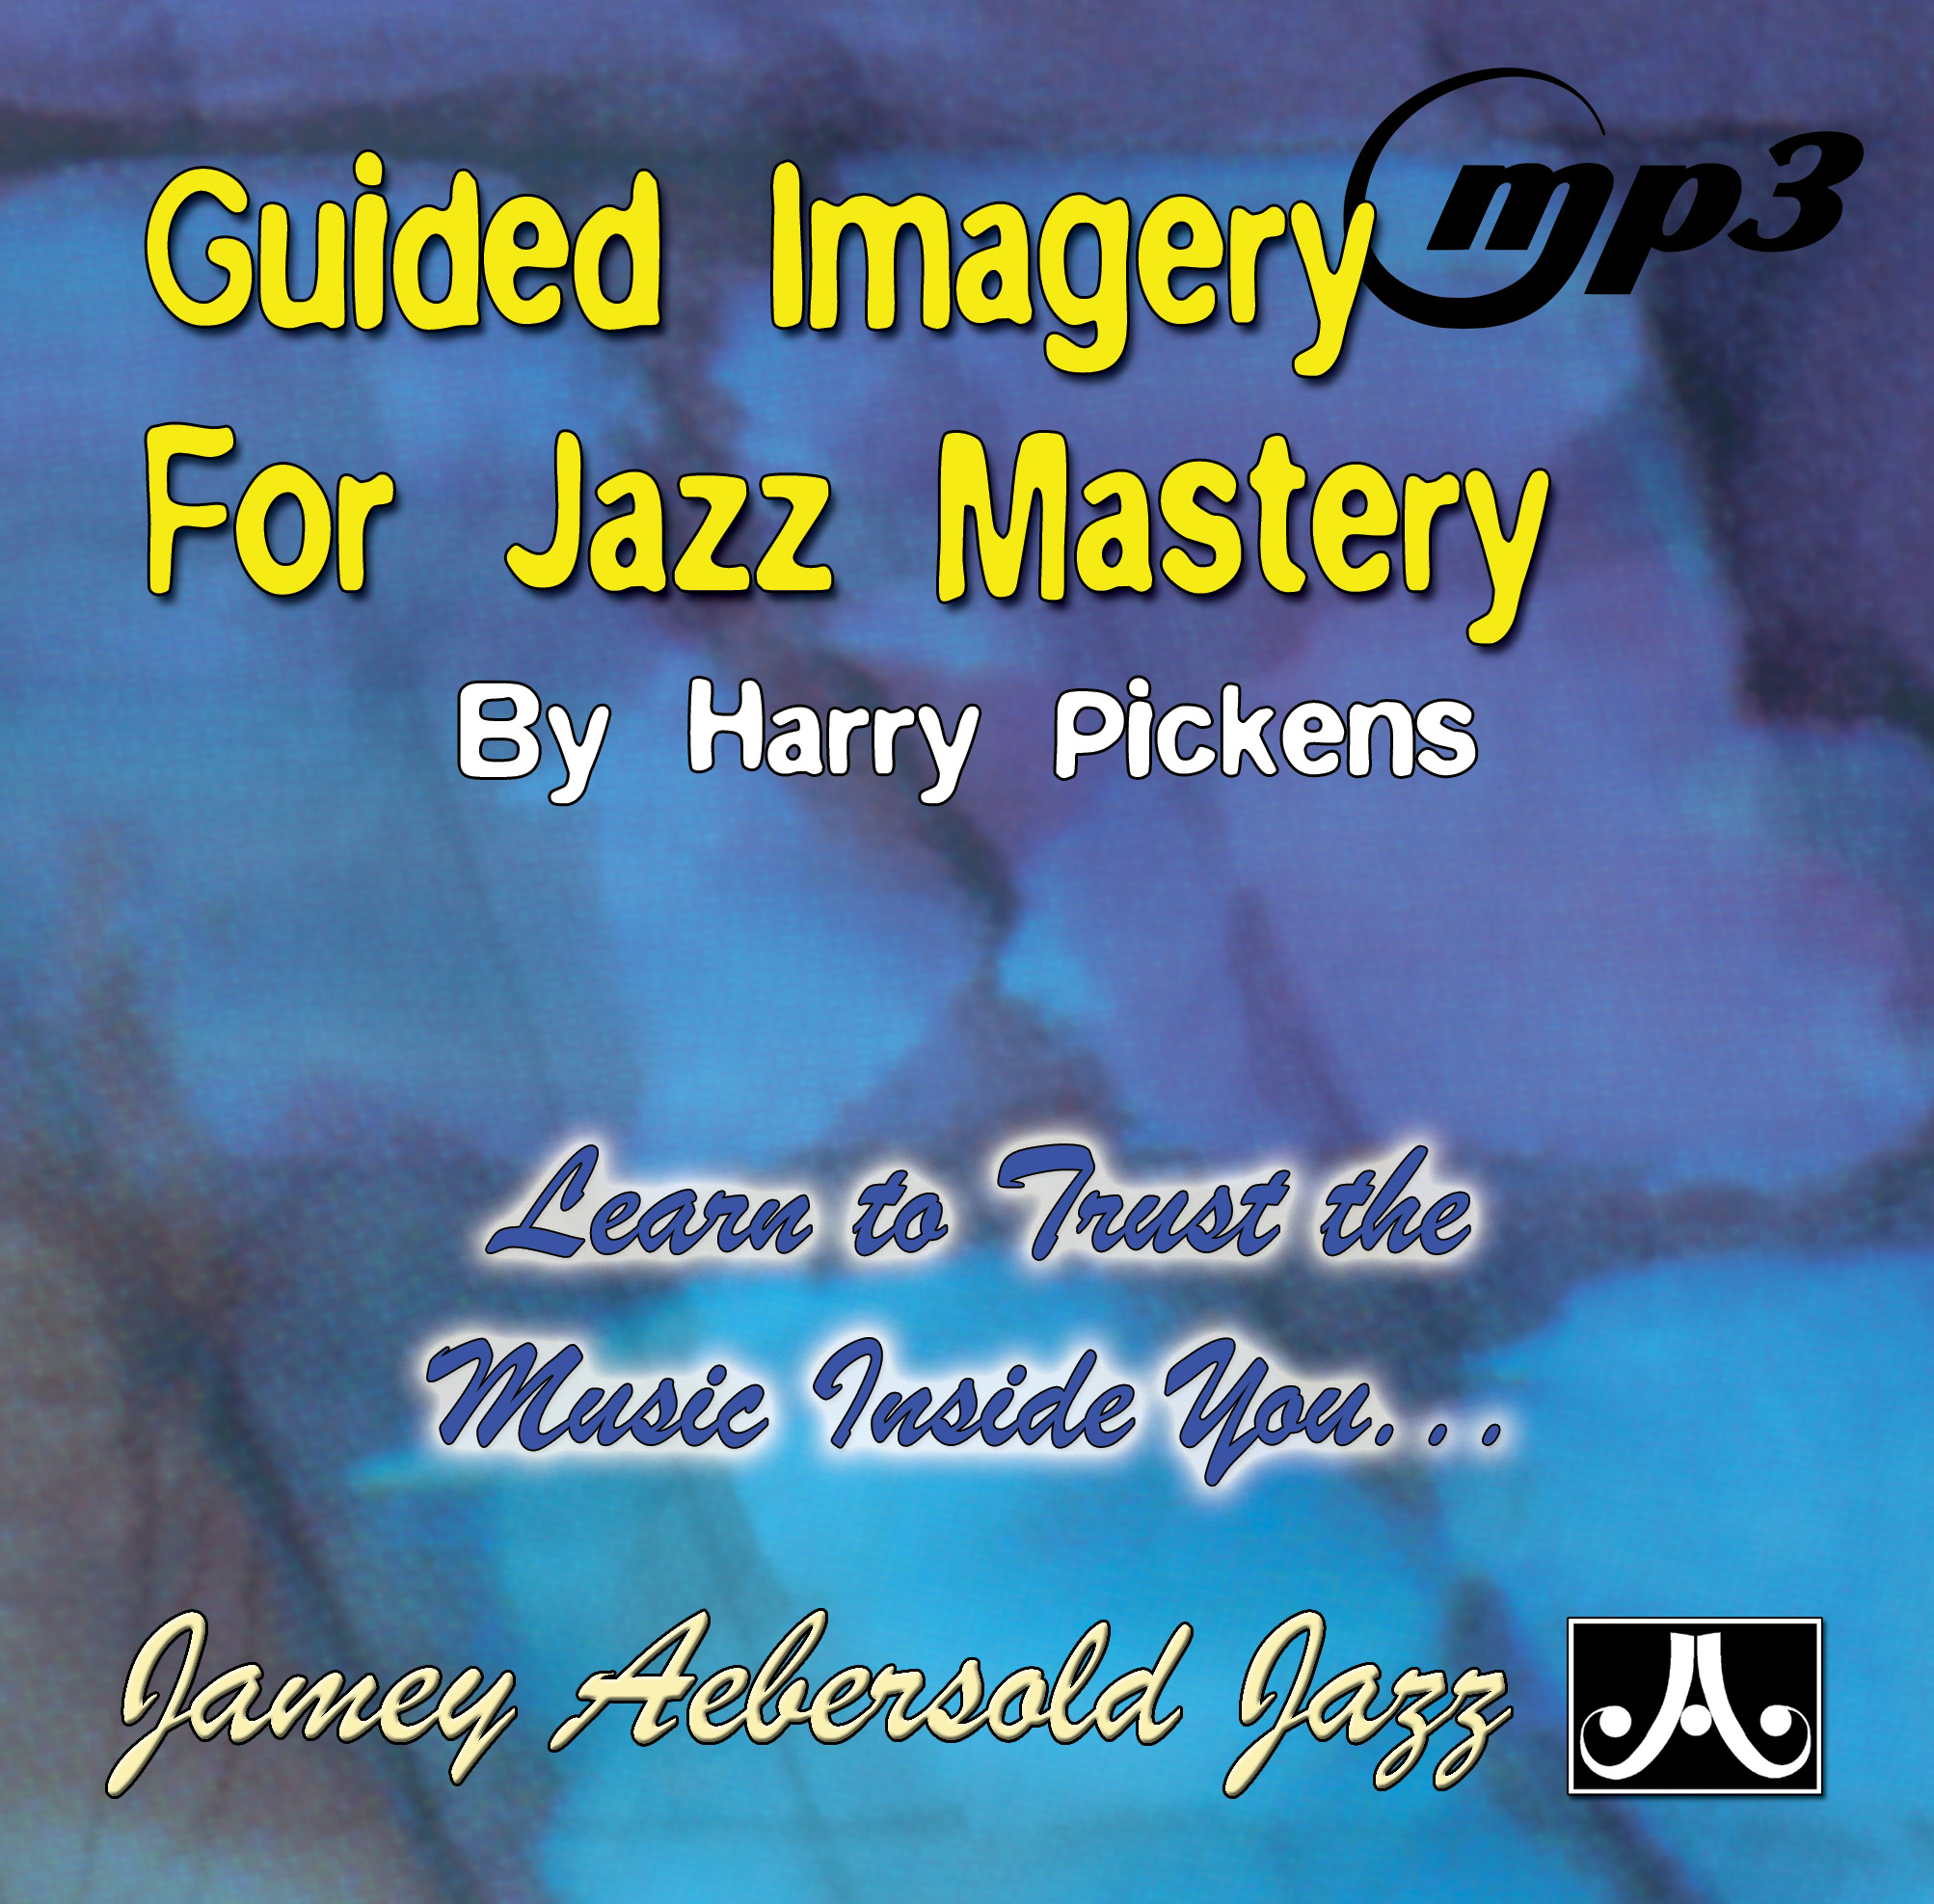 Guided Imagery For Jazz Mastery - 2 CDs